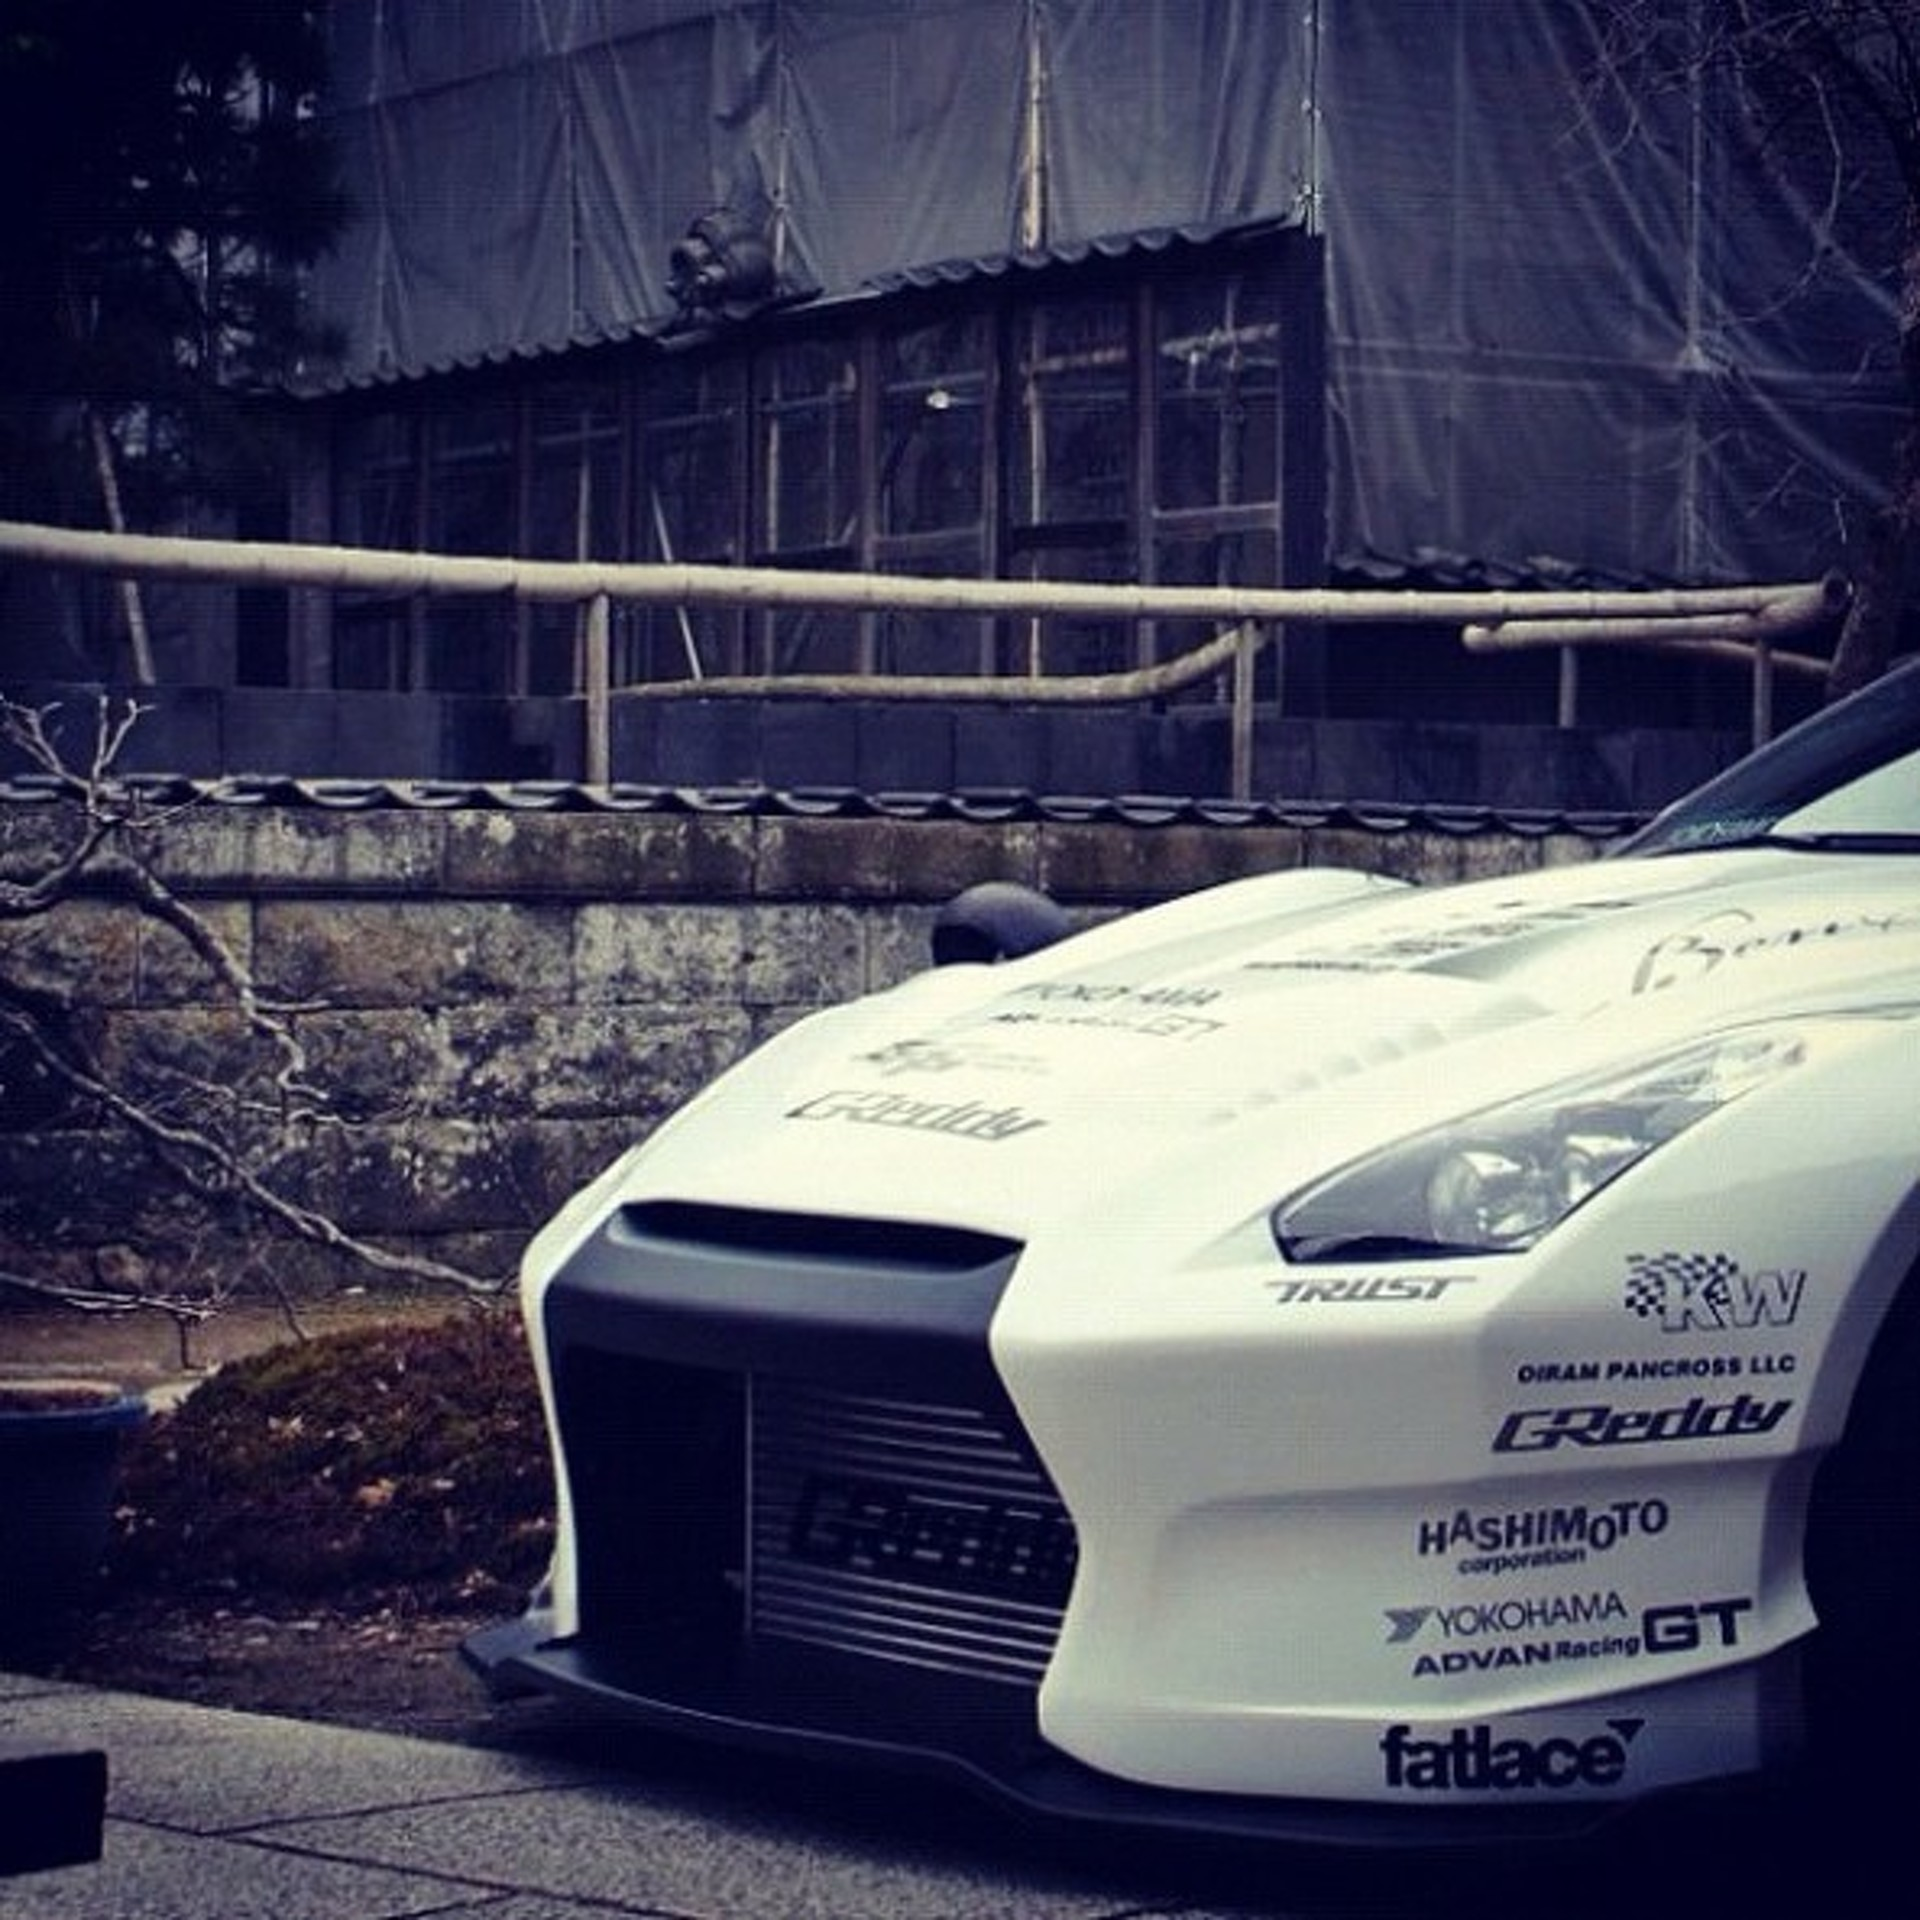 The Top 10 #boldride Instagrams of the Week